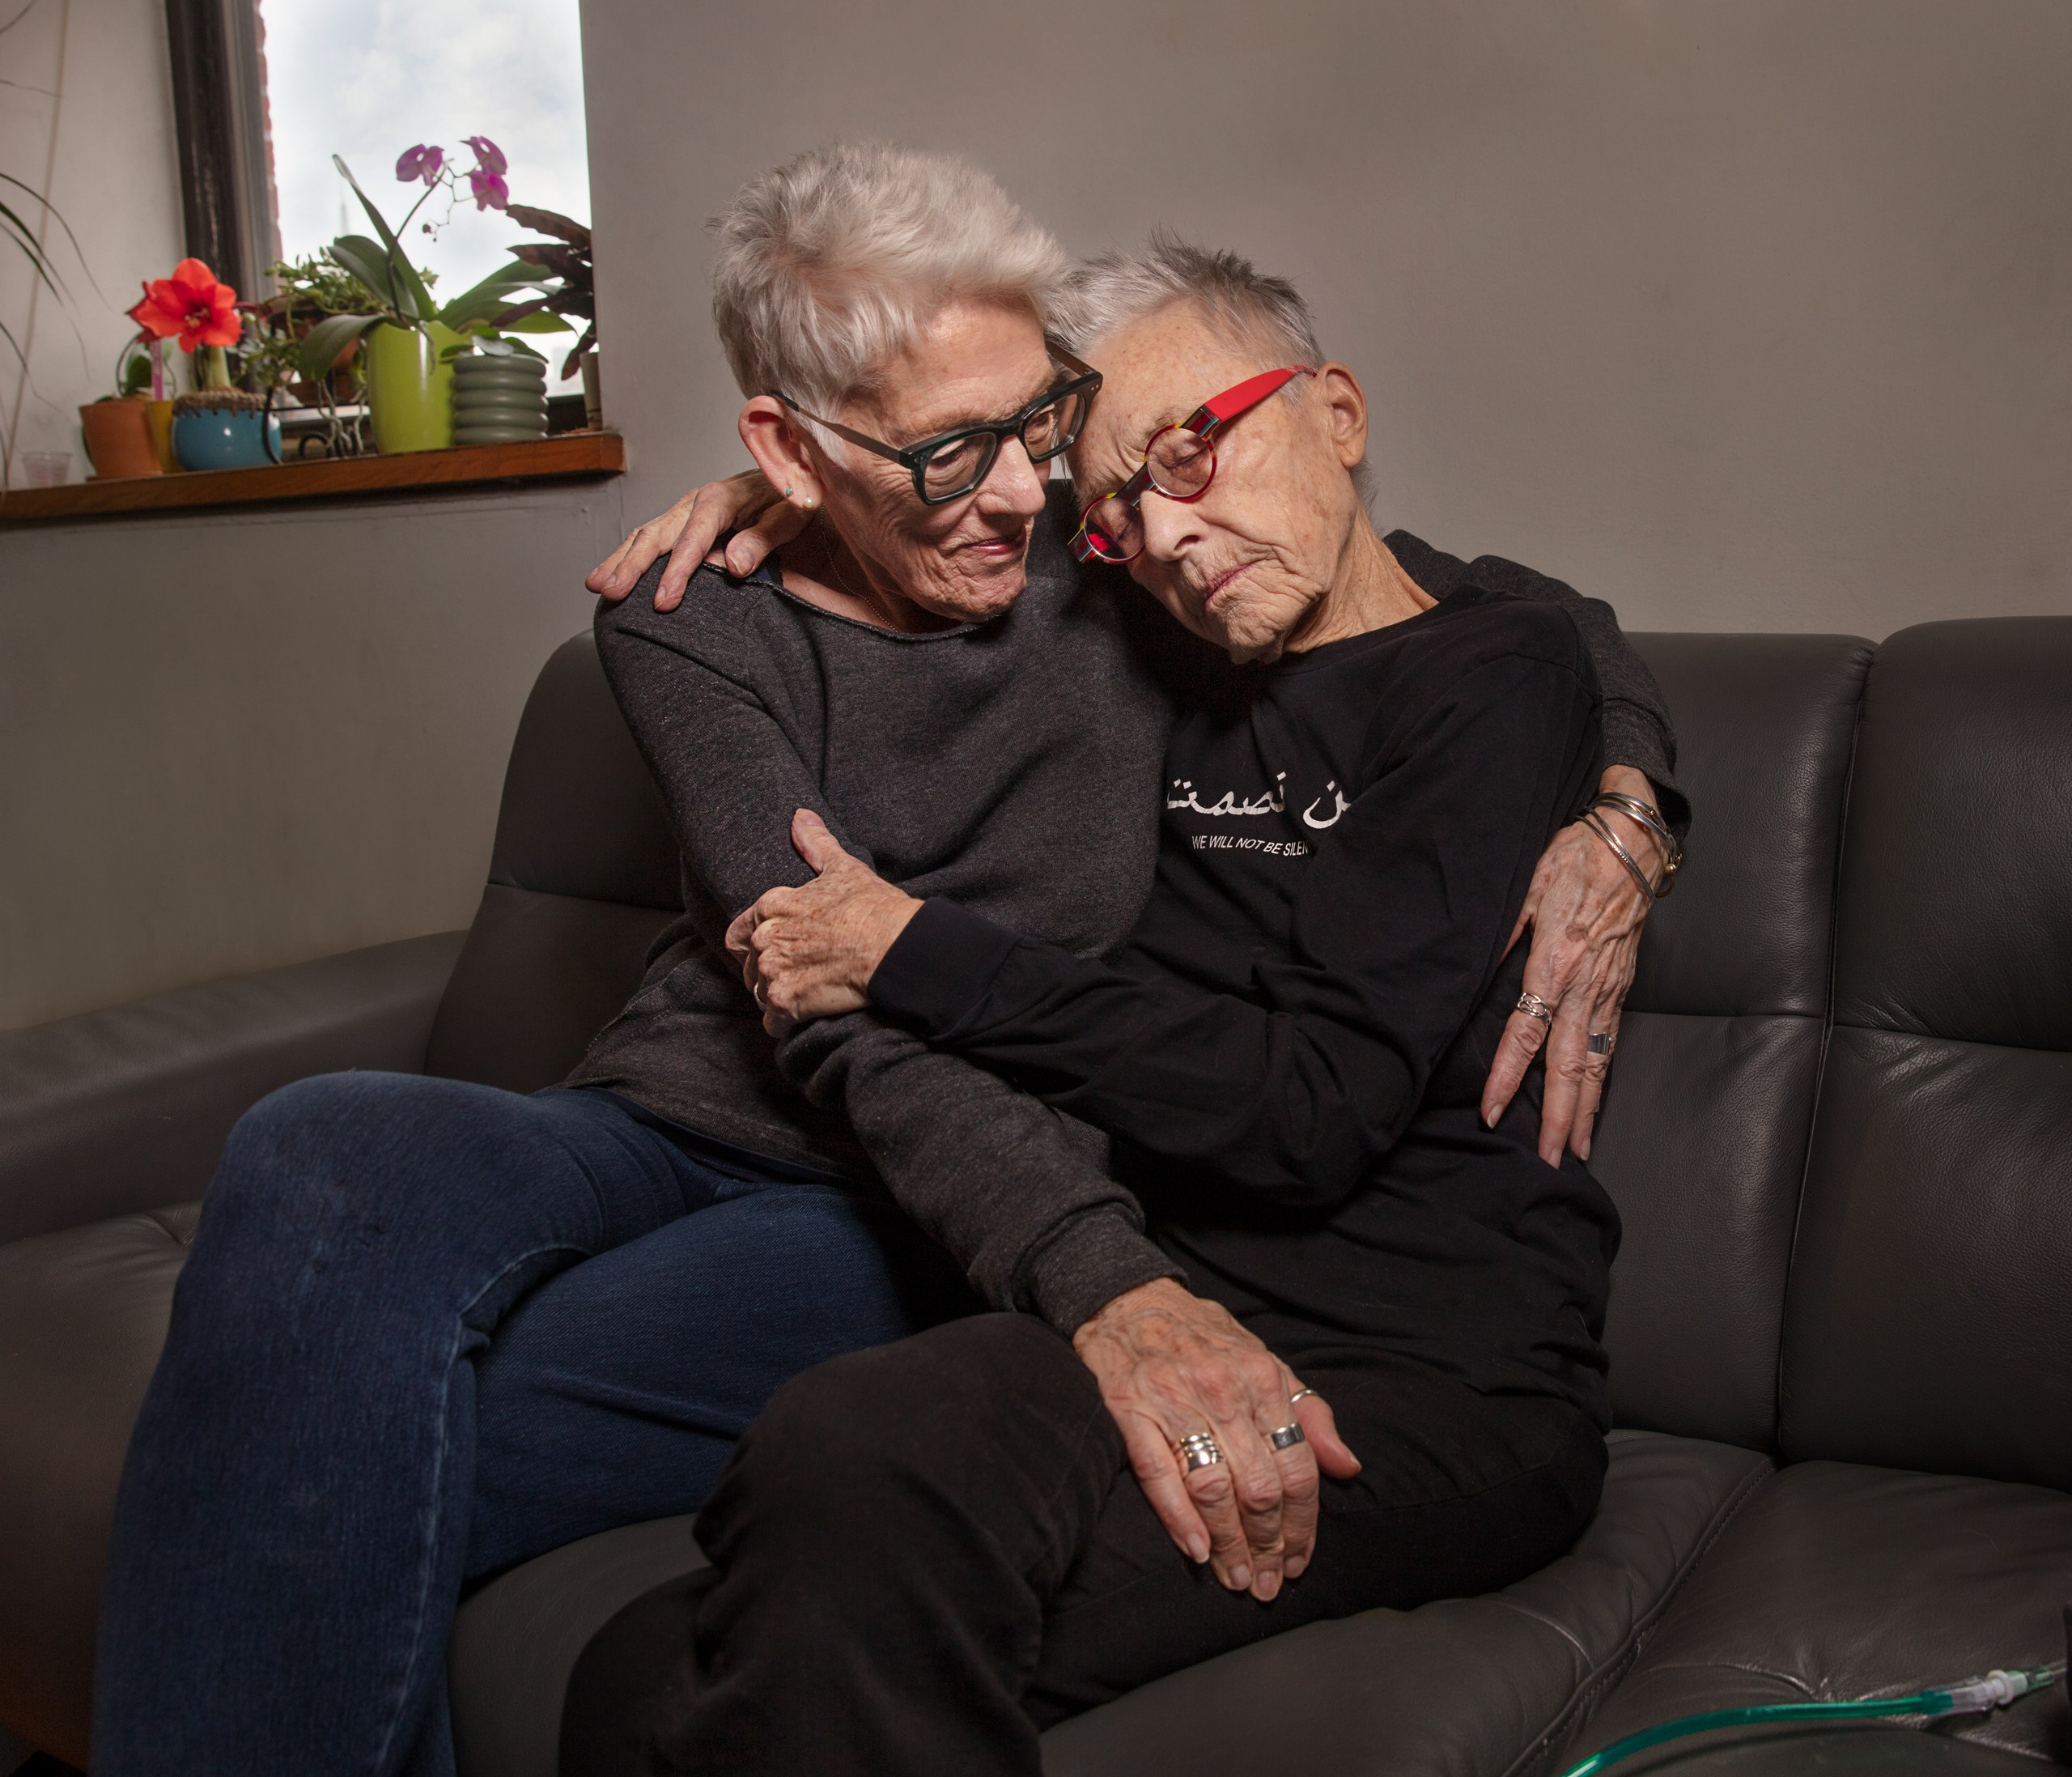 Photo of Barbara Hammer and her spouse Florrie Burke